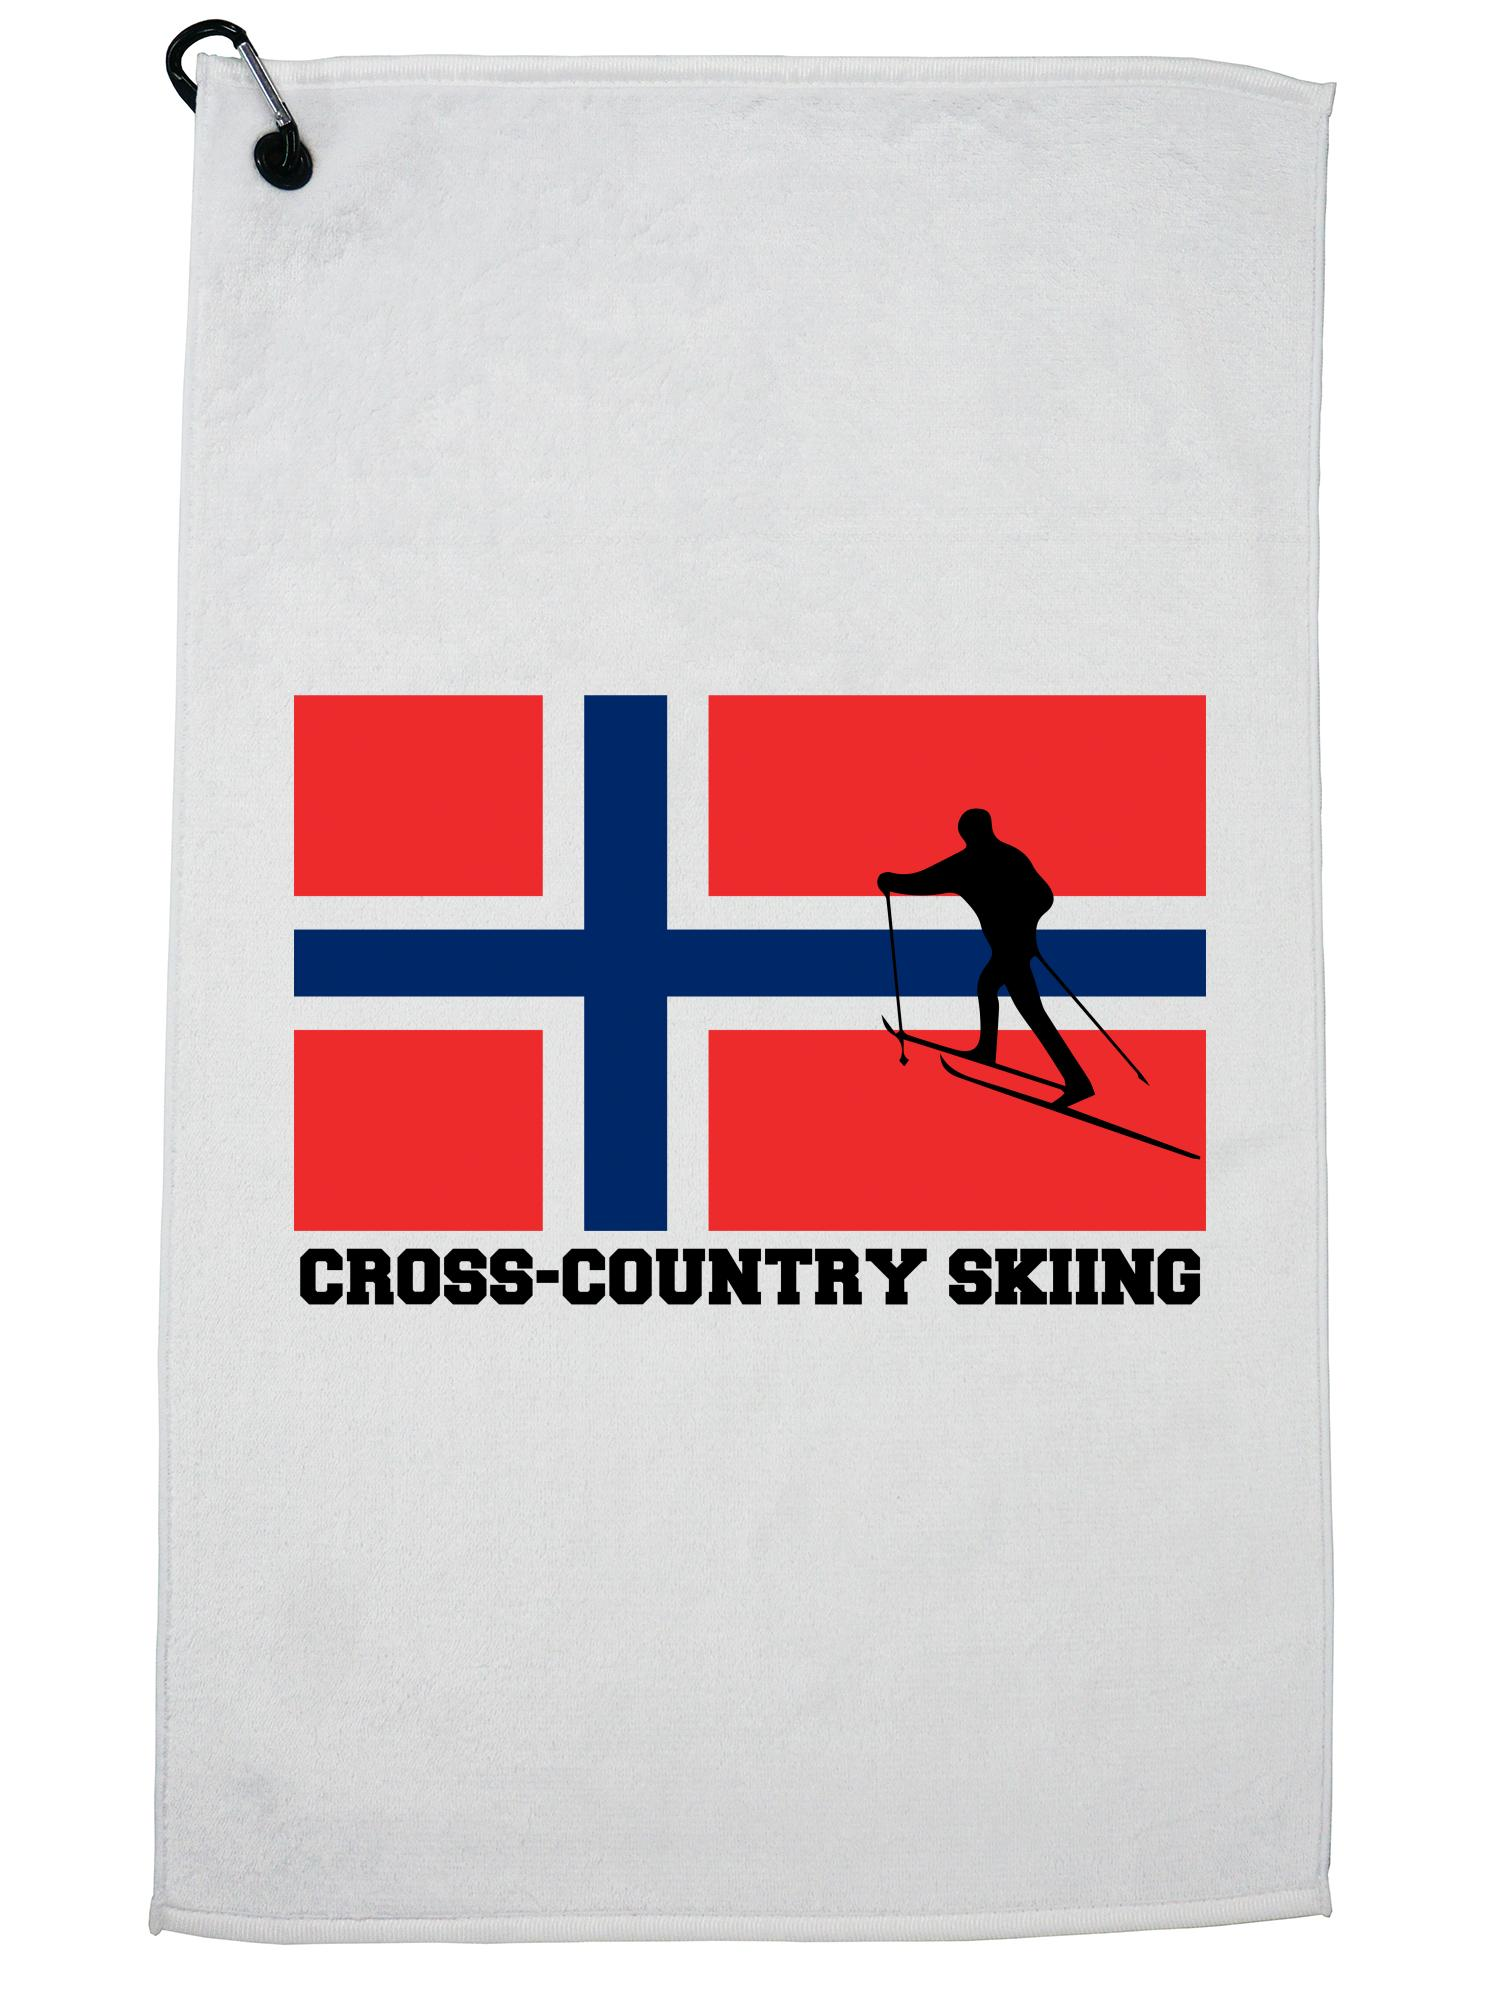 Norway Olympic Cross-Country Skiing Flag Silhouette Golf Towel with Carabiner Clip by Hollywood Thread